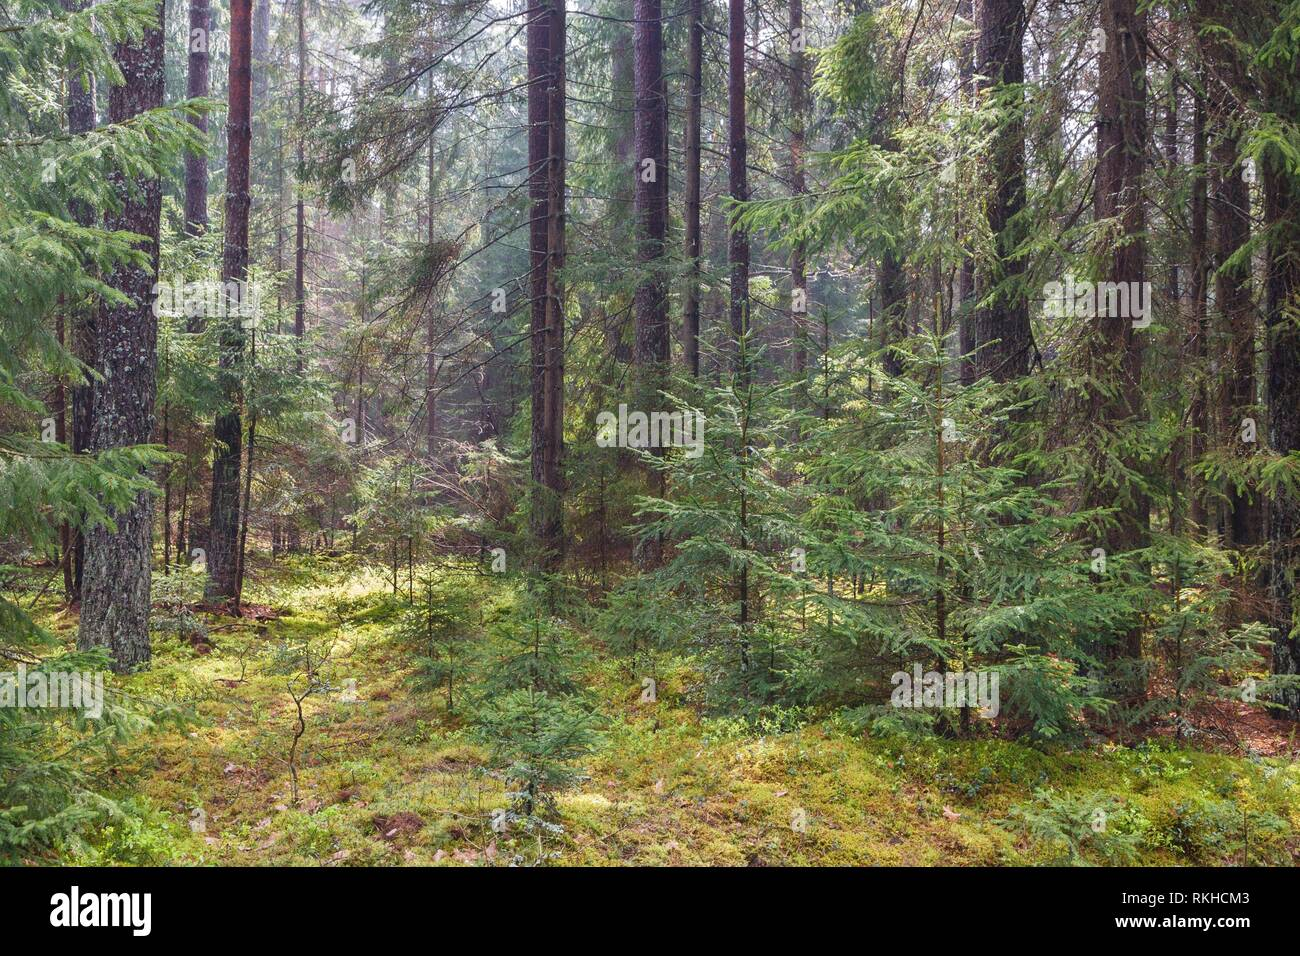 Pine tree stand in springtime with juvenile spruces in foreground, Bialowieza Forest, Poland, Europe. - Stock Image